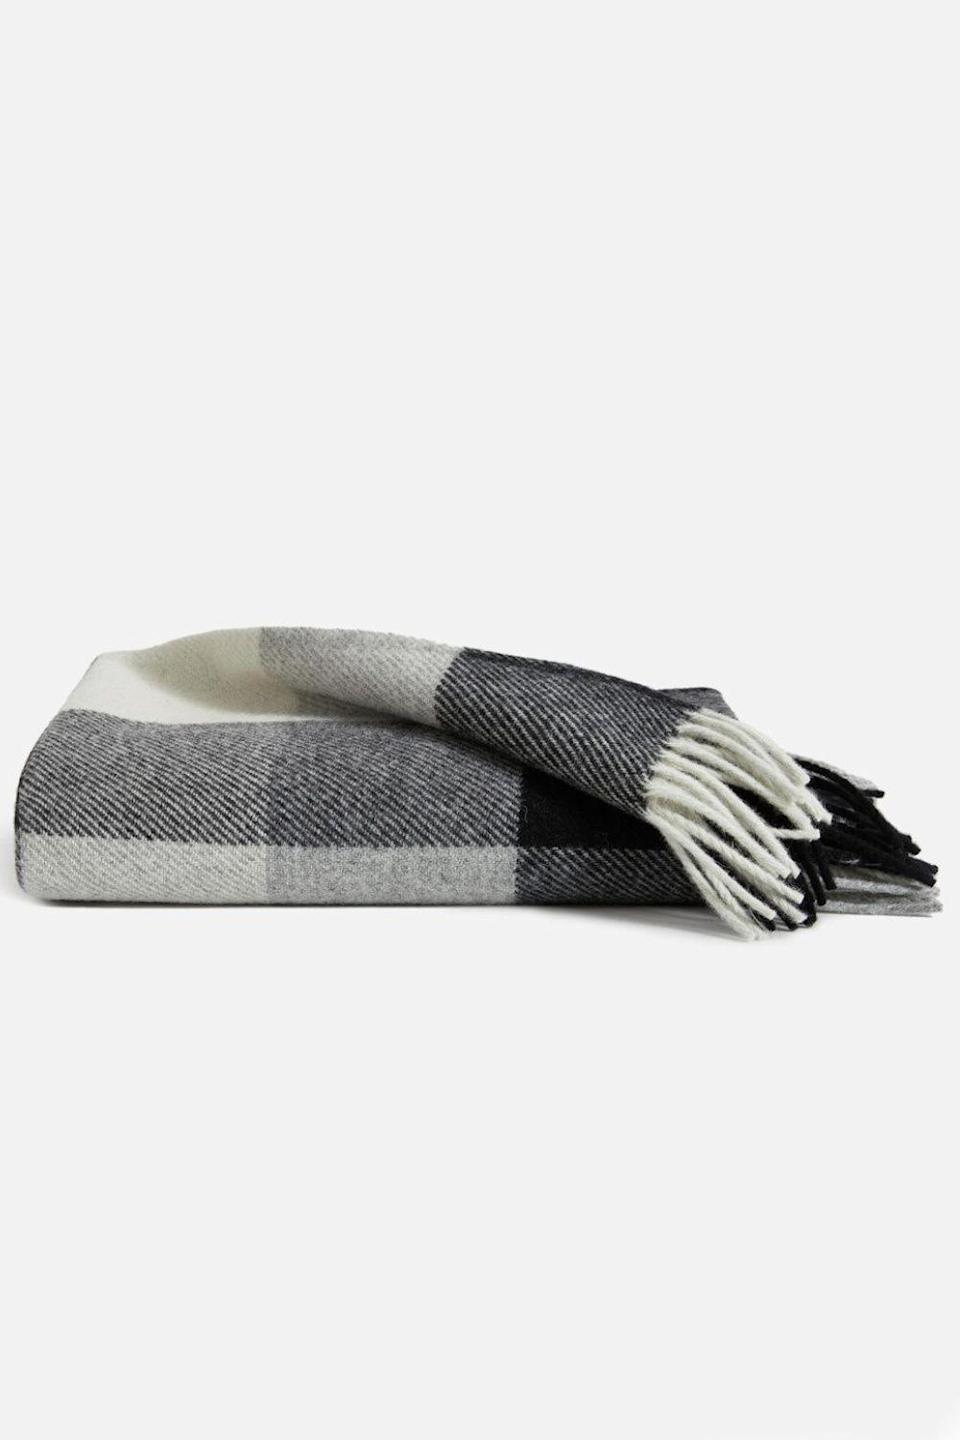 """<p><strong>Pendelton</strong></p><p>brooklinen.com</p><p><strong>$109.00</strong></p><p><a href=""""https://go.redirectingat.com?id=74968X1596630&url=https%3A%2F%2Fwww.brooklinen.com%2Fproducts%2Fpendleton-throw-blanket&sref=https%3A%2F%2Fwww.cosmopolitan.com%2Fstyle-beauty%2Ffashion%2Fg32619153%2Fgifts-for-man-who-has-everything%2F"""" rel=""""nofollow noopener"""" target=""""_blank"""" data-ylk=""""slk:Shop Now"""" class=""""link rapid-noclick-resp"""">Shop Now</a></p><p>Get him this blanket made from eco-wise wool—even if you'll most likely be the one using it all the time.</p>"""